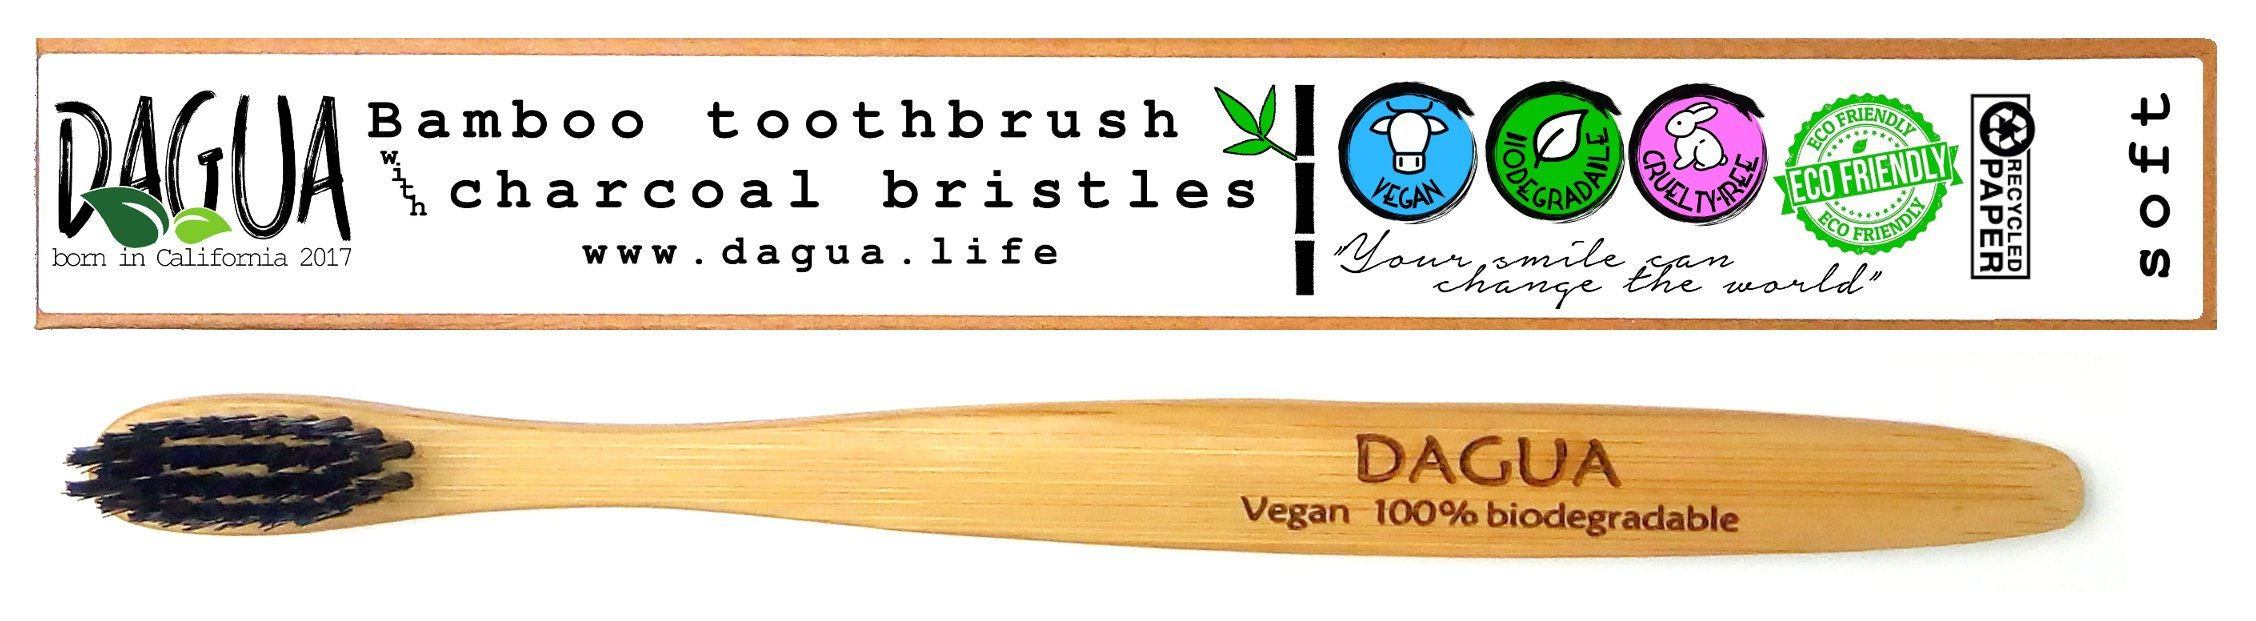 DAGUA Eco-friendly Bamboo Toothbrush with Charcoal Bristles